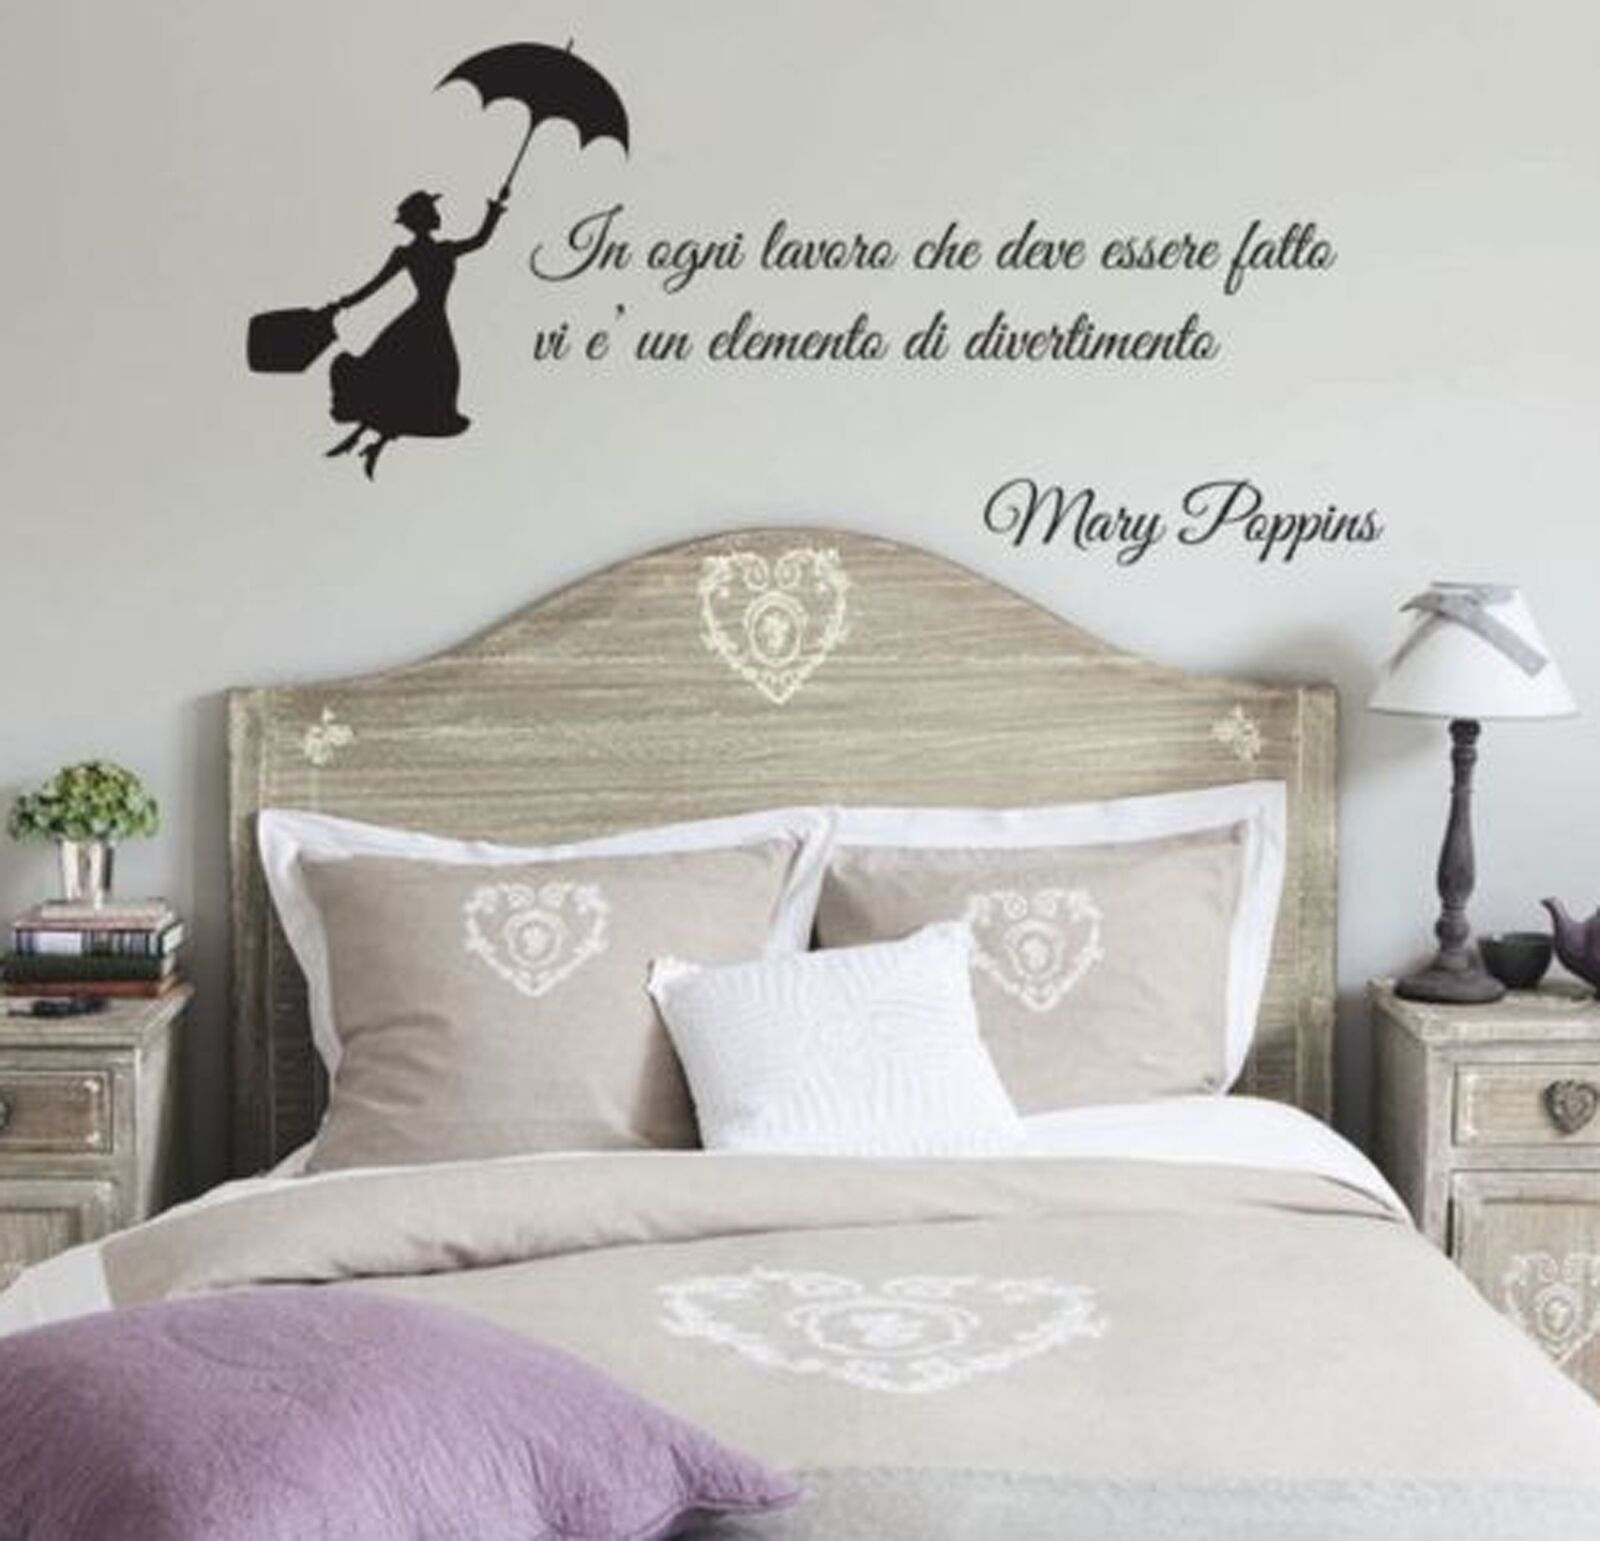 wall stickers usa wall stickers usa wall stickers usa. Black Bedroom Furniture Sets. Home Design Ideas